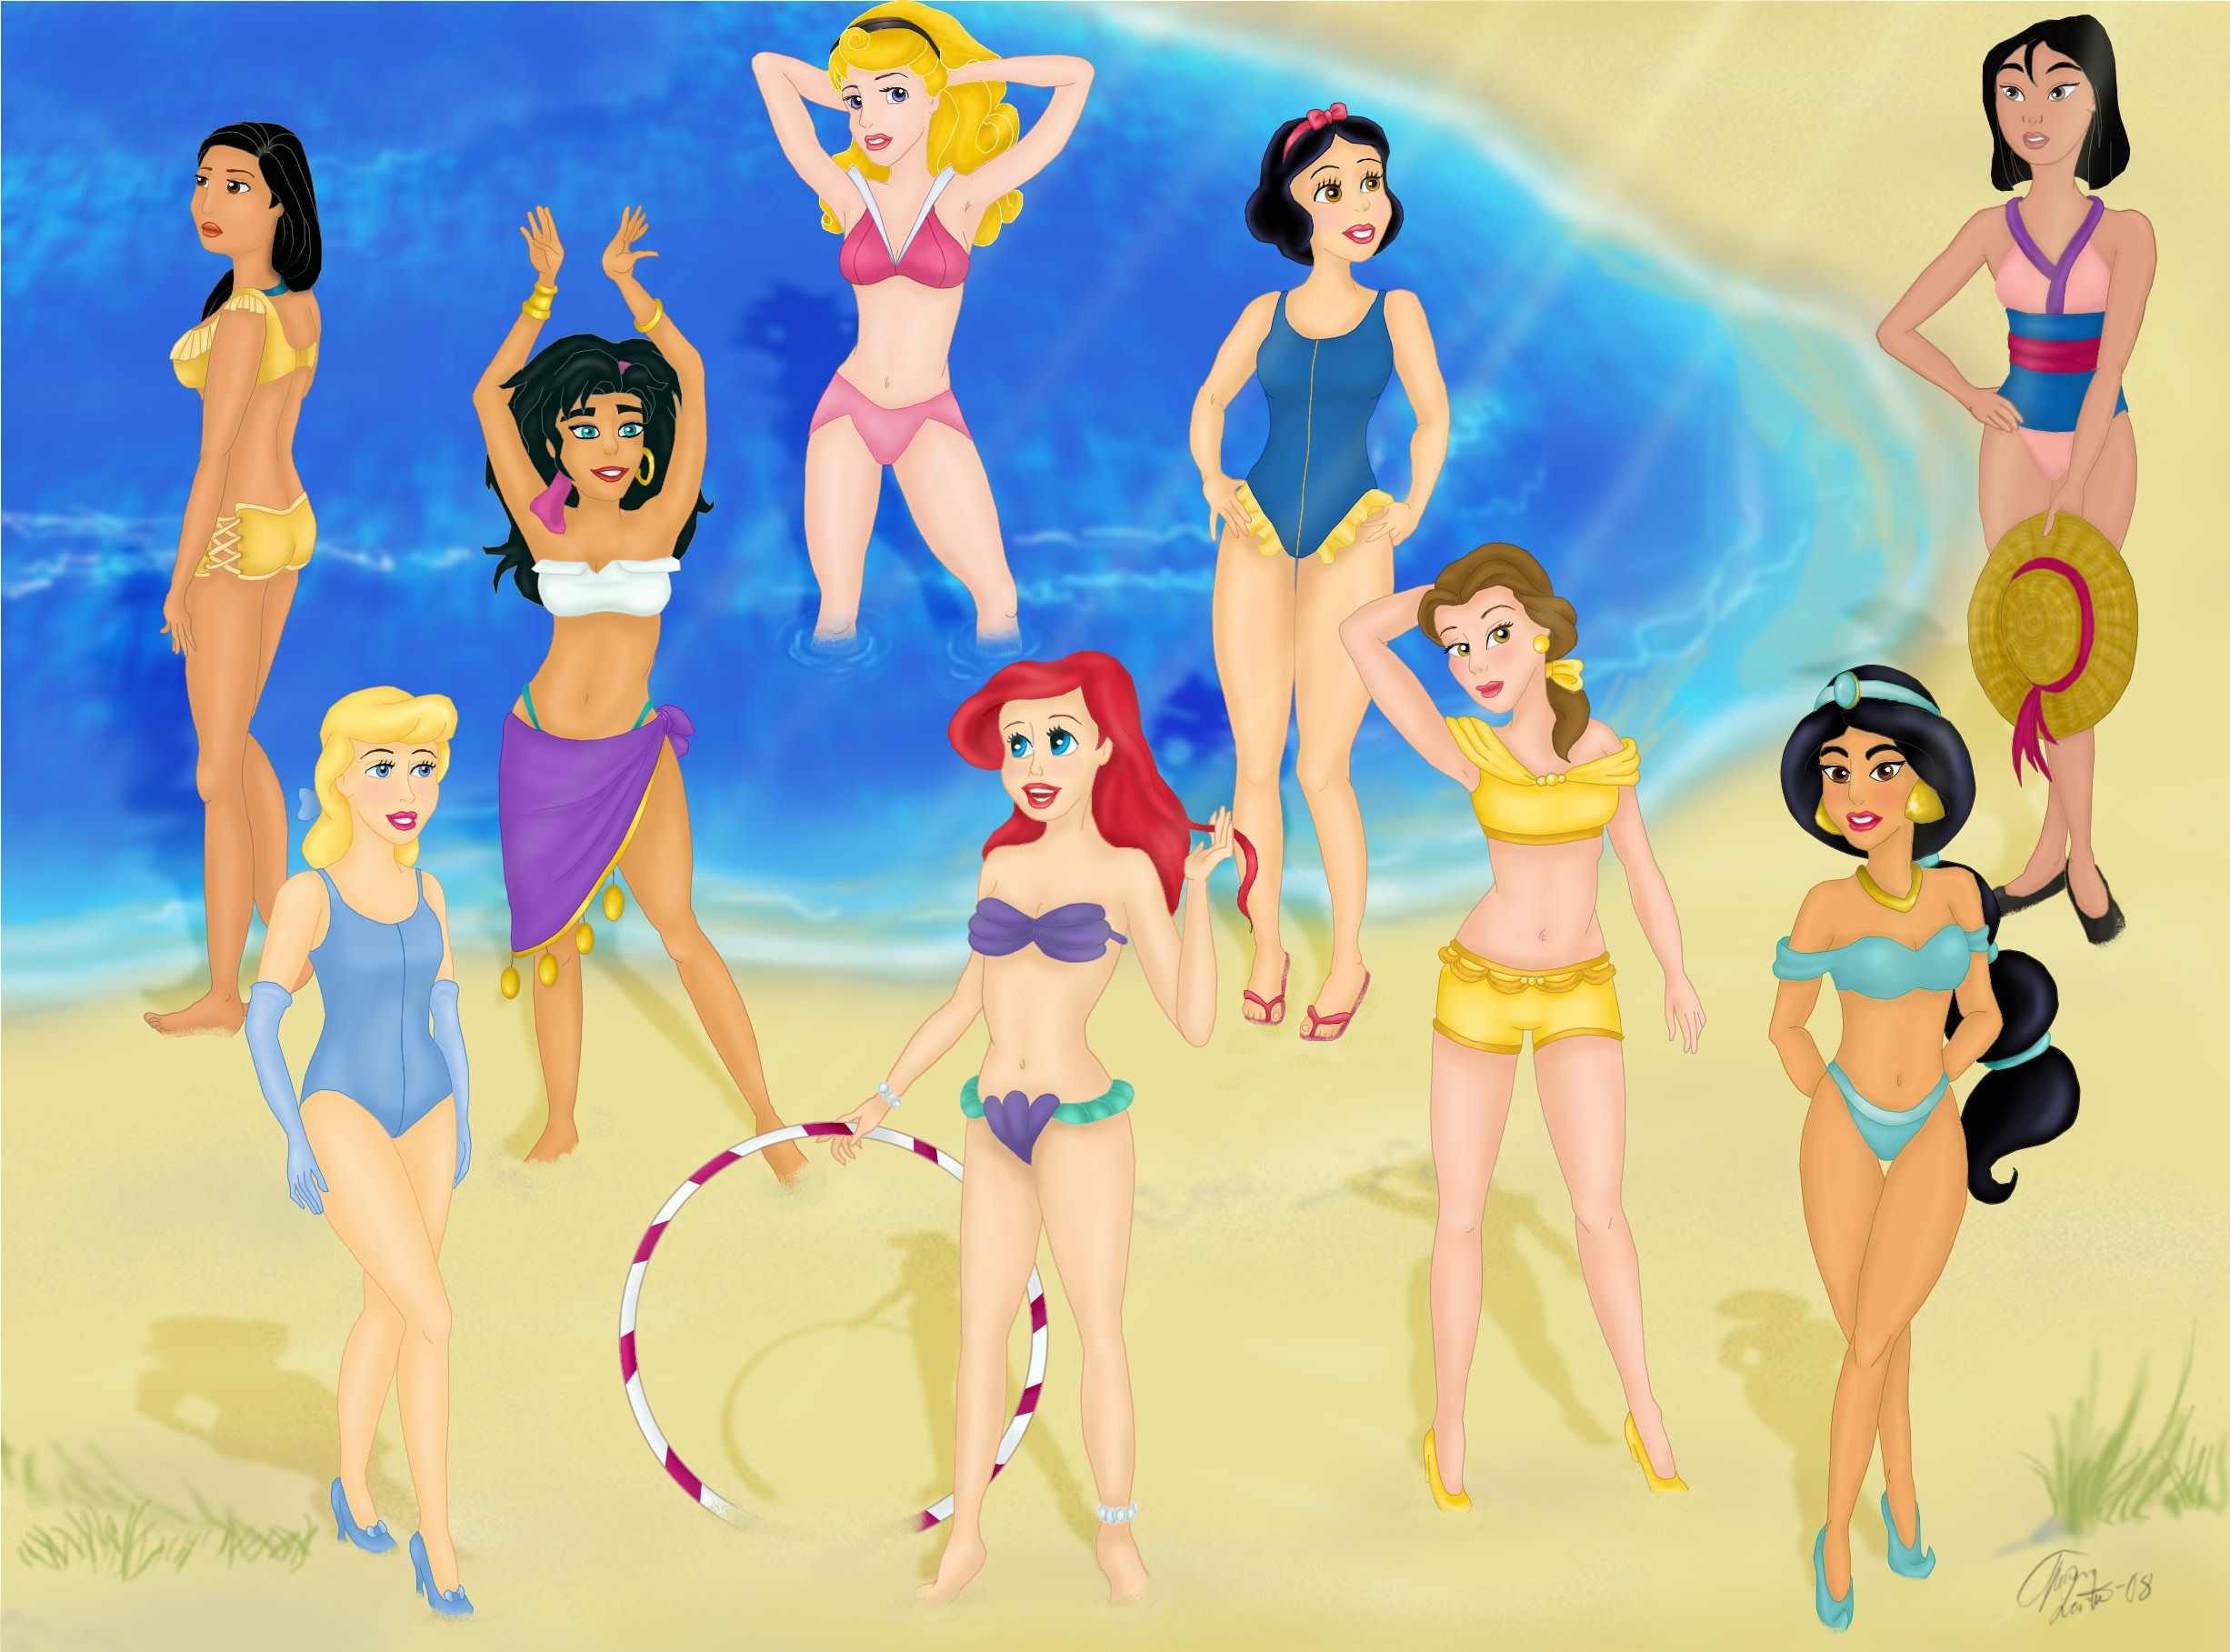 Famous cartoon characters in bikinis